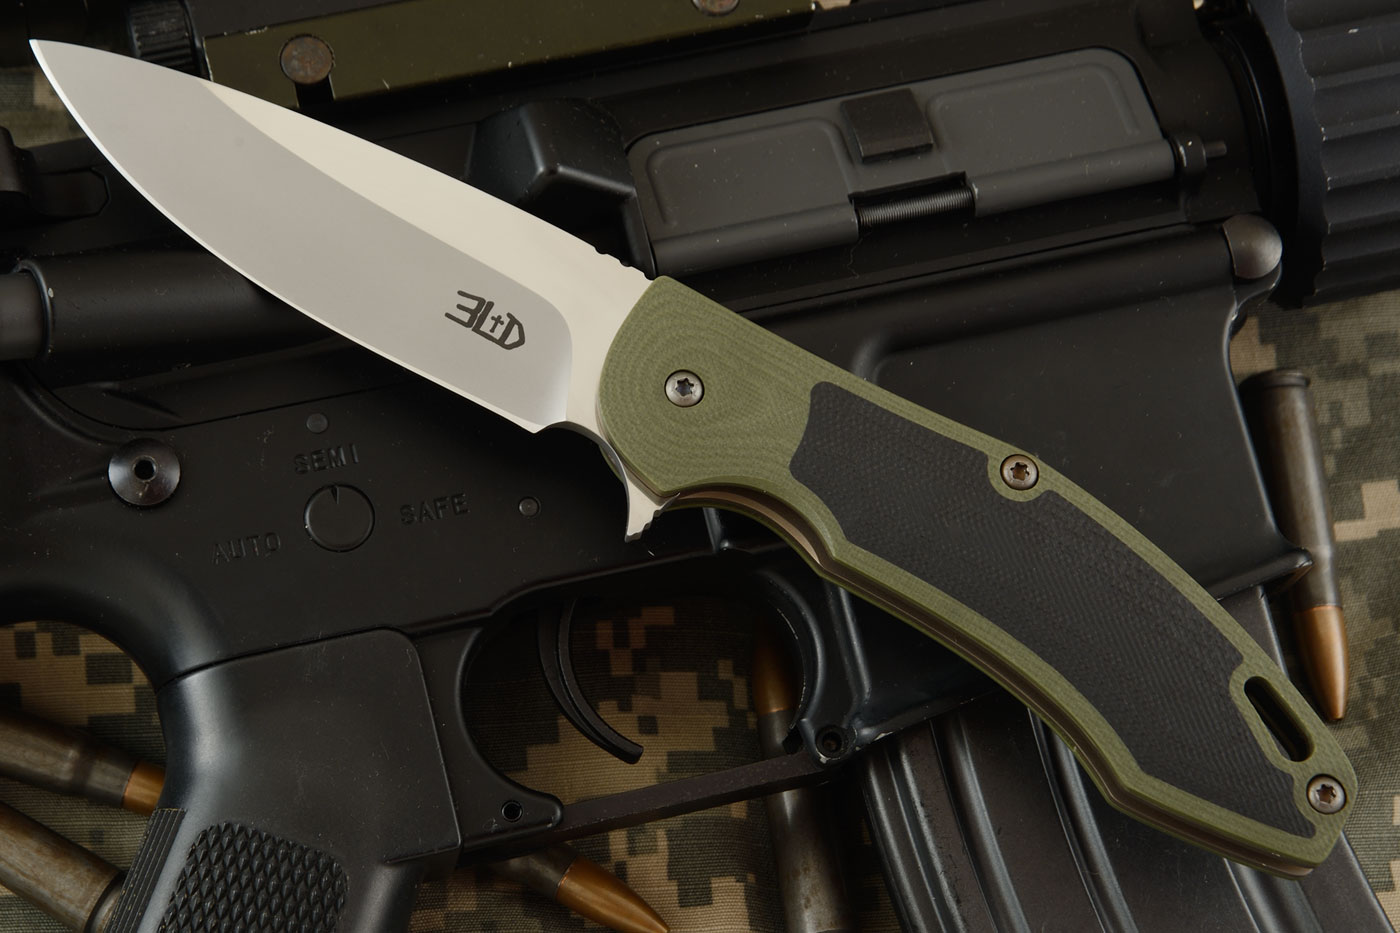 H4 Flipper with Green and Black G10 (Ceramic IKBS)